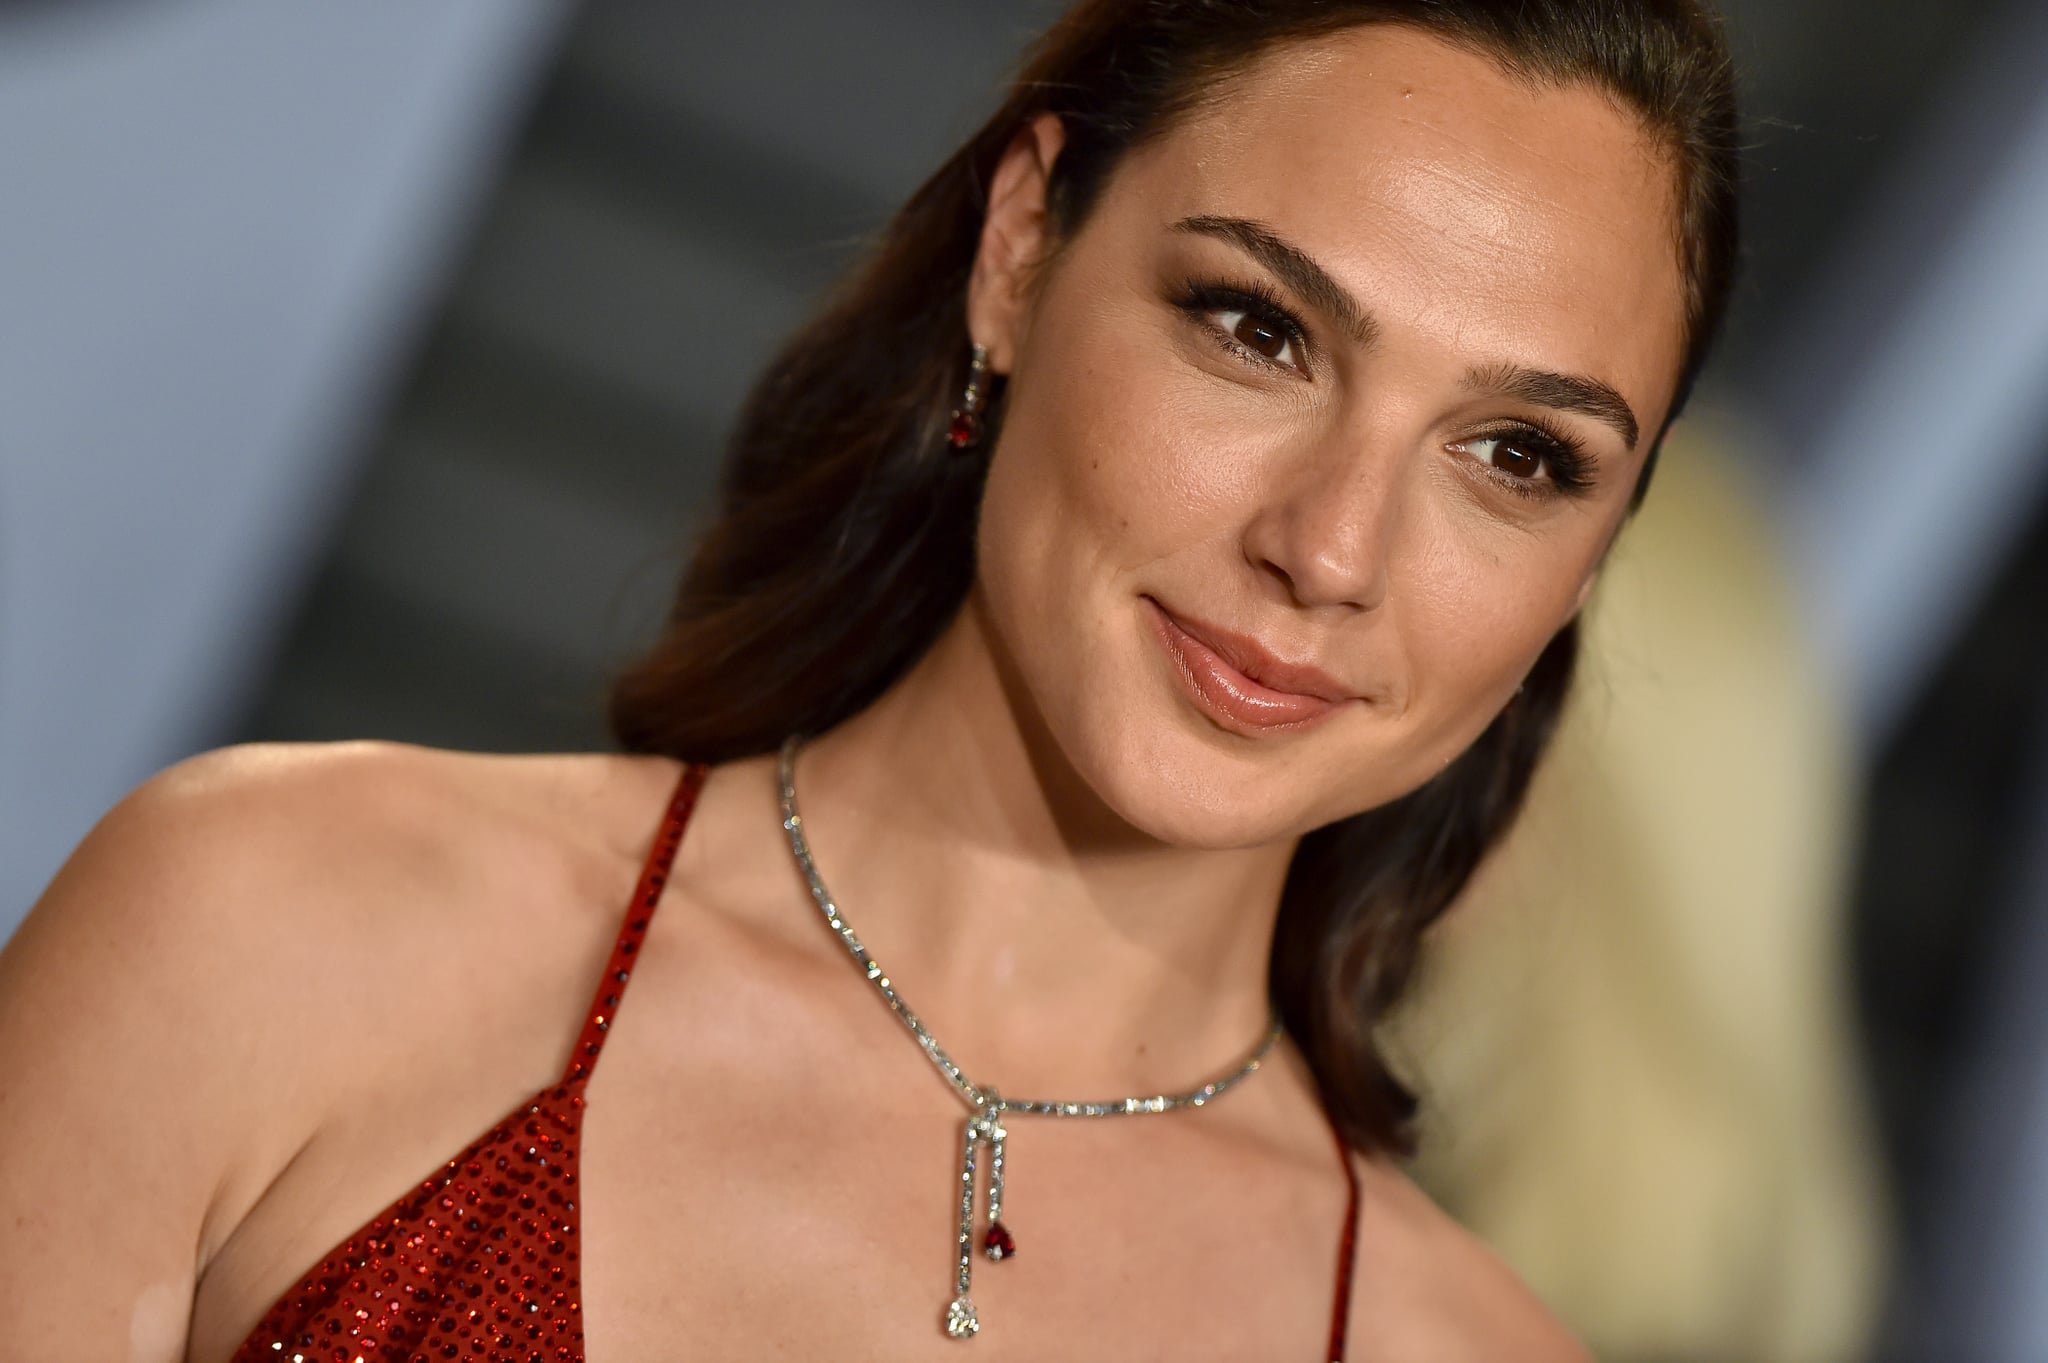 BEVERLY HILLS, CA - MARCH 04:  Actress Gal Gadot attends the 2018 Vanity Fair Oscar Party hosted by Radhika Jones at Wallis Annenberg Center for the Performing Arts on March 4, 2018 in Beverly Hills, California.  (Photo by Axelle/Bauer-Griffin/FilmMagic)